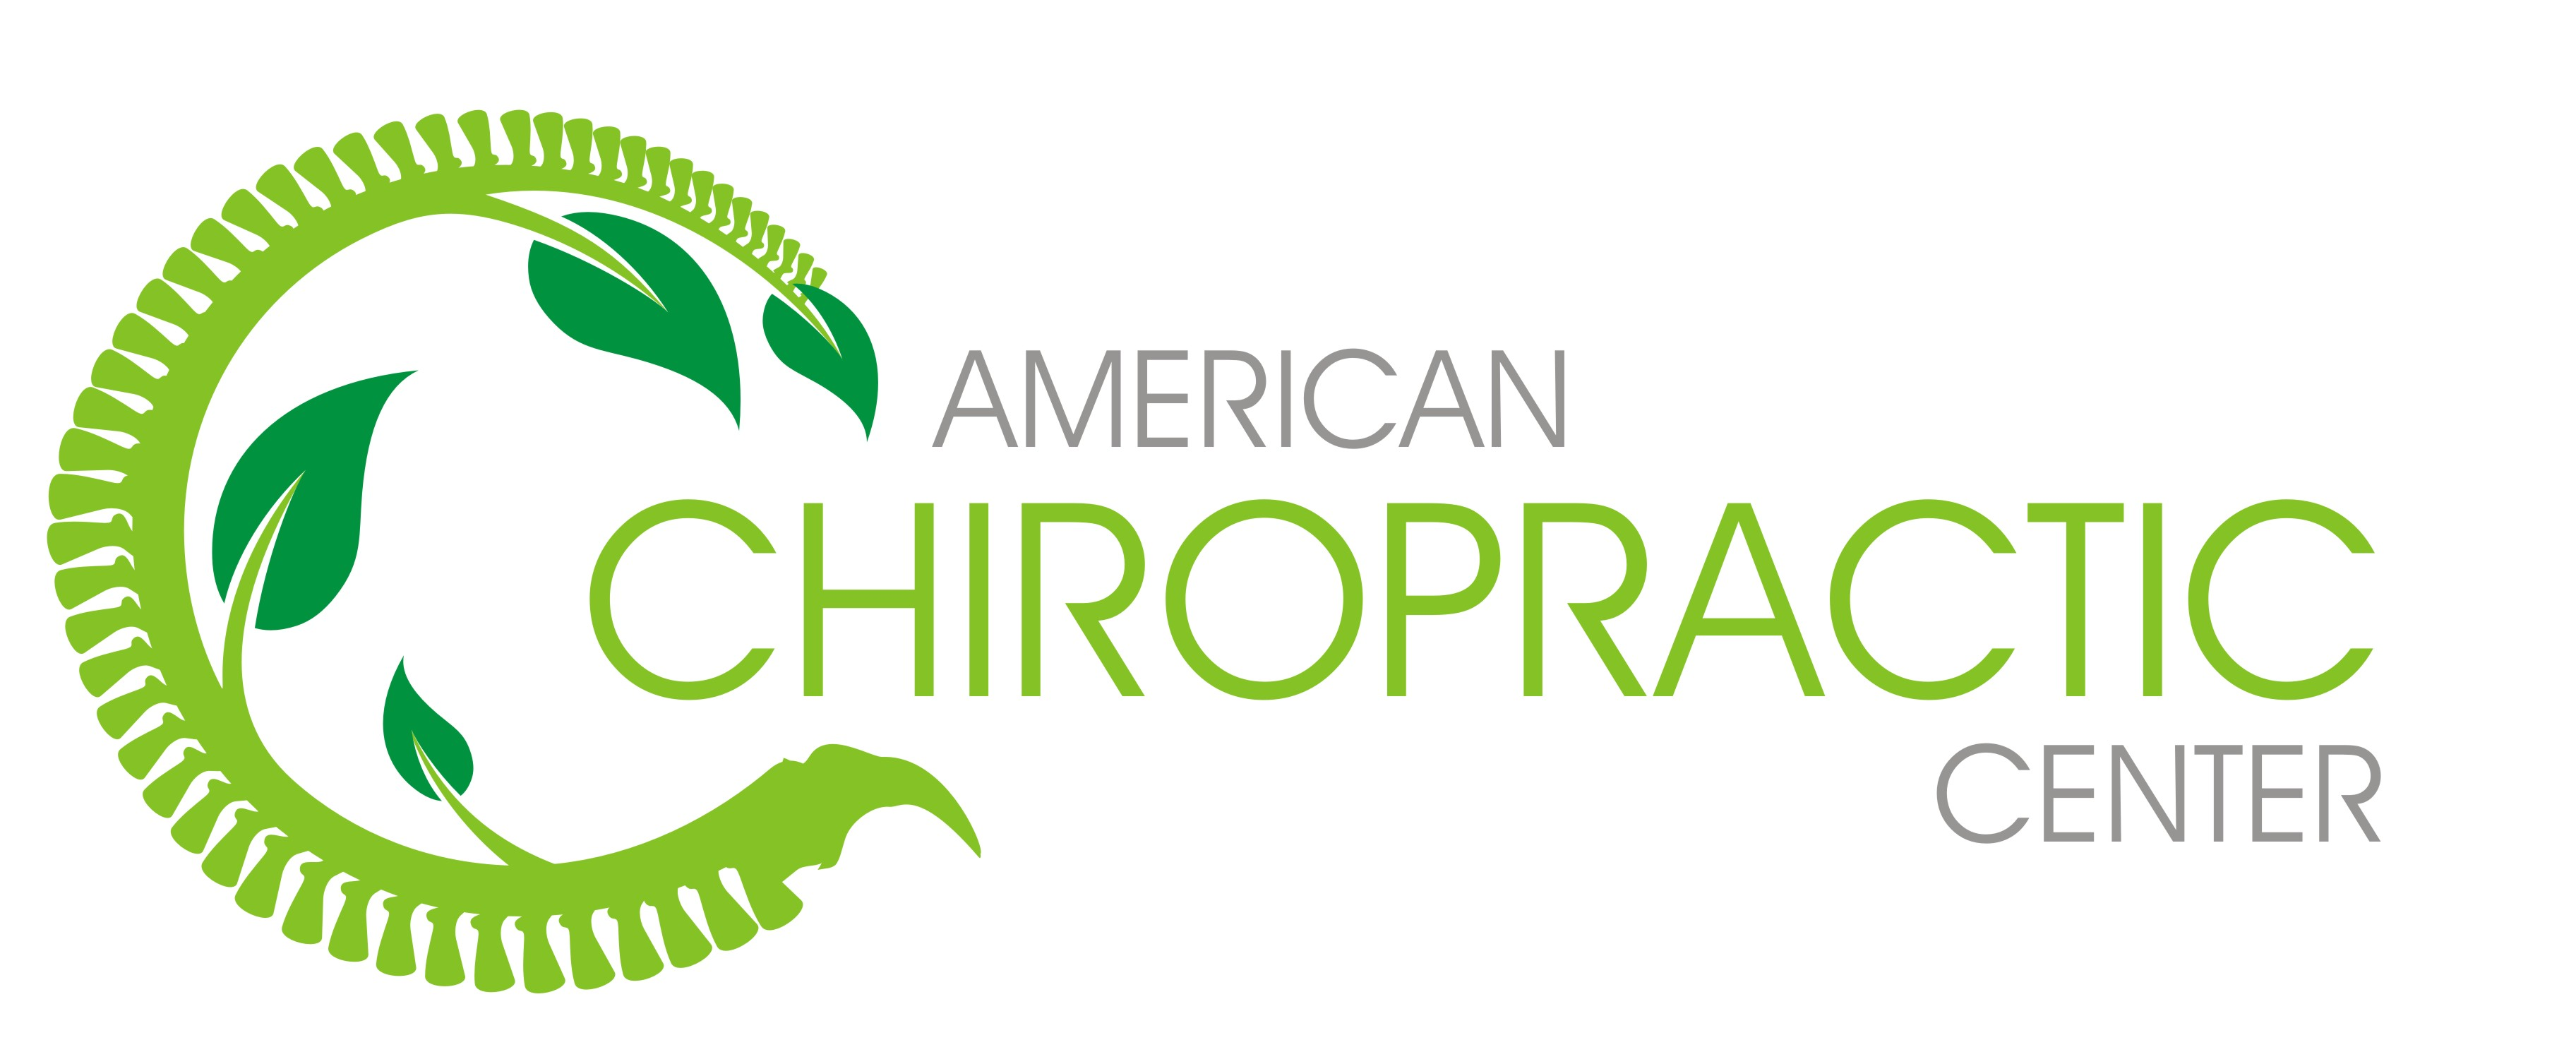 Logo Design by Crystal Desizns - Entry No. 240 in the Logo Design Contest Logo Design for American Chiropractic Center.